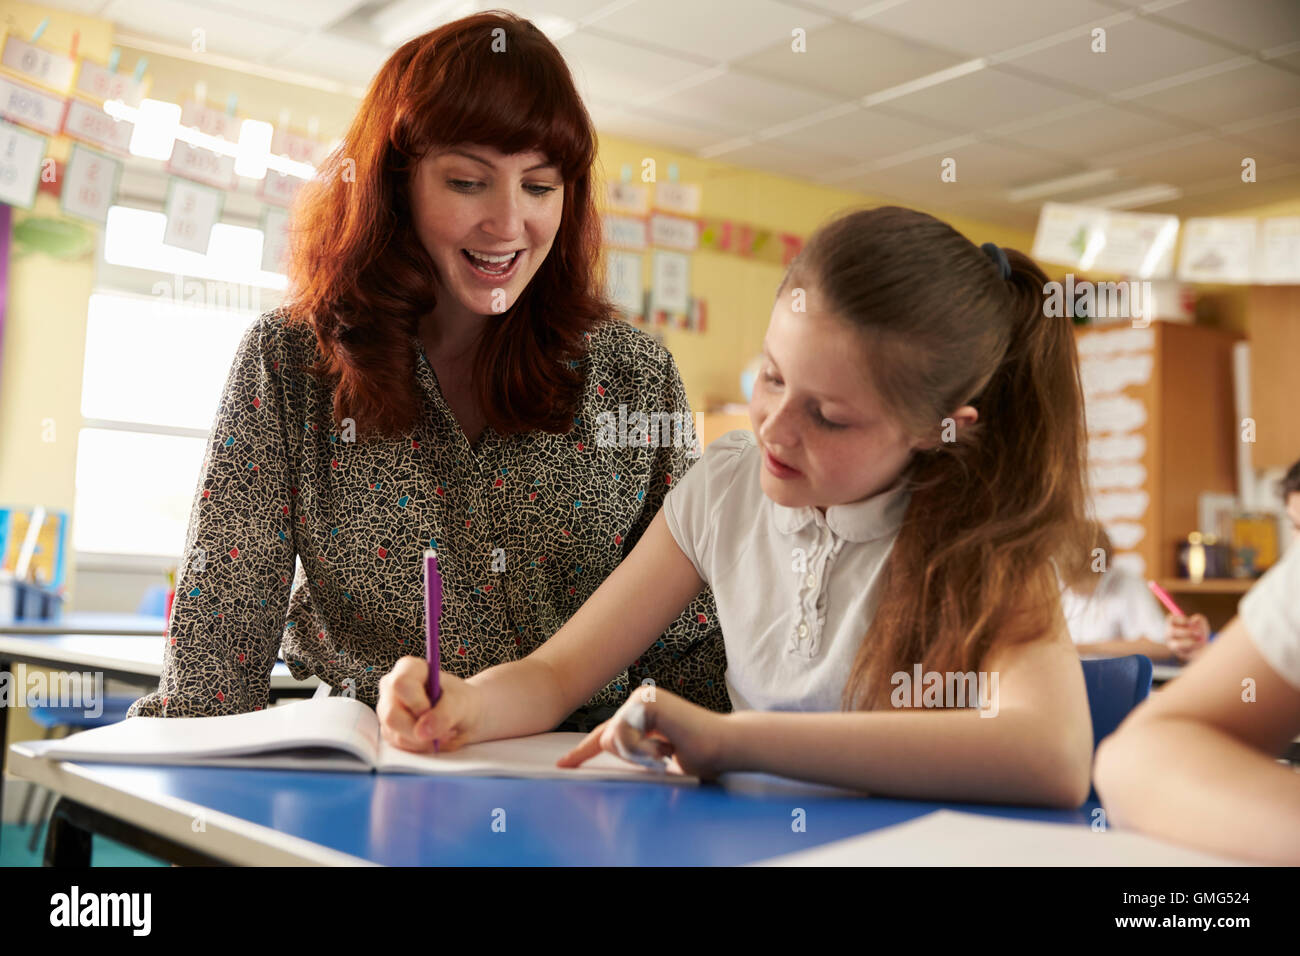 Primary school teacher helping with classwork at girl's desk - Stock Image